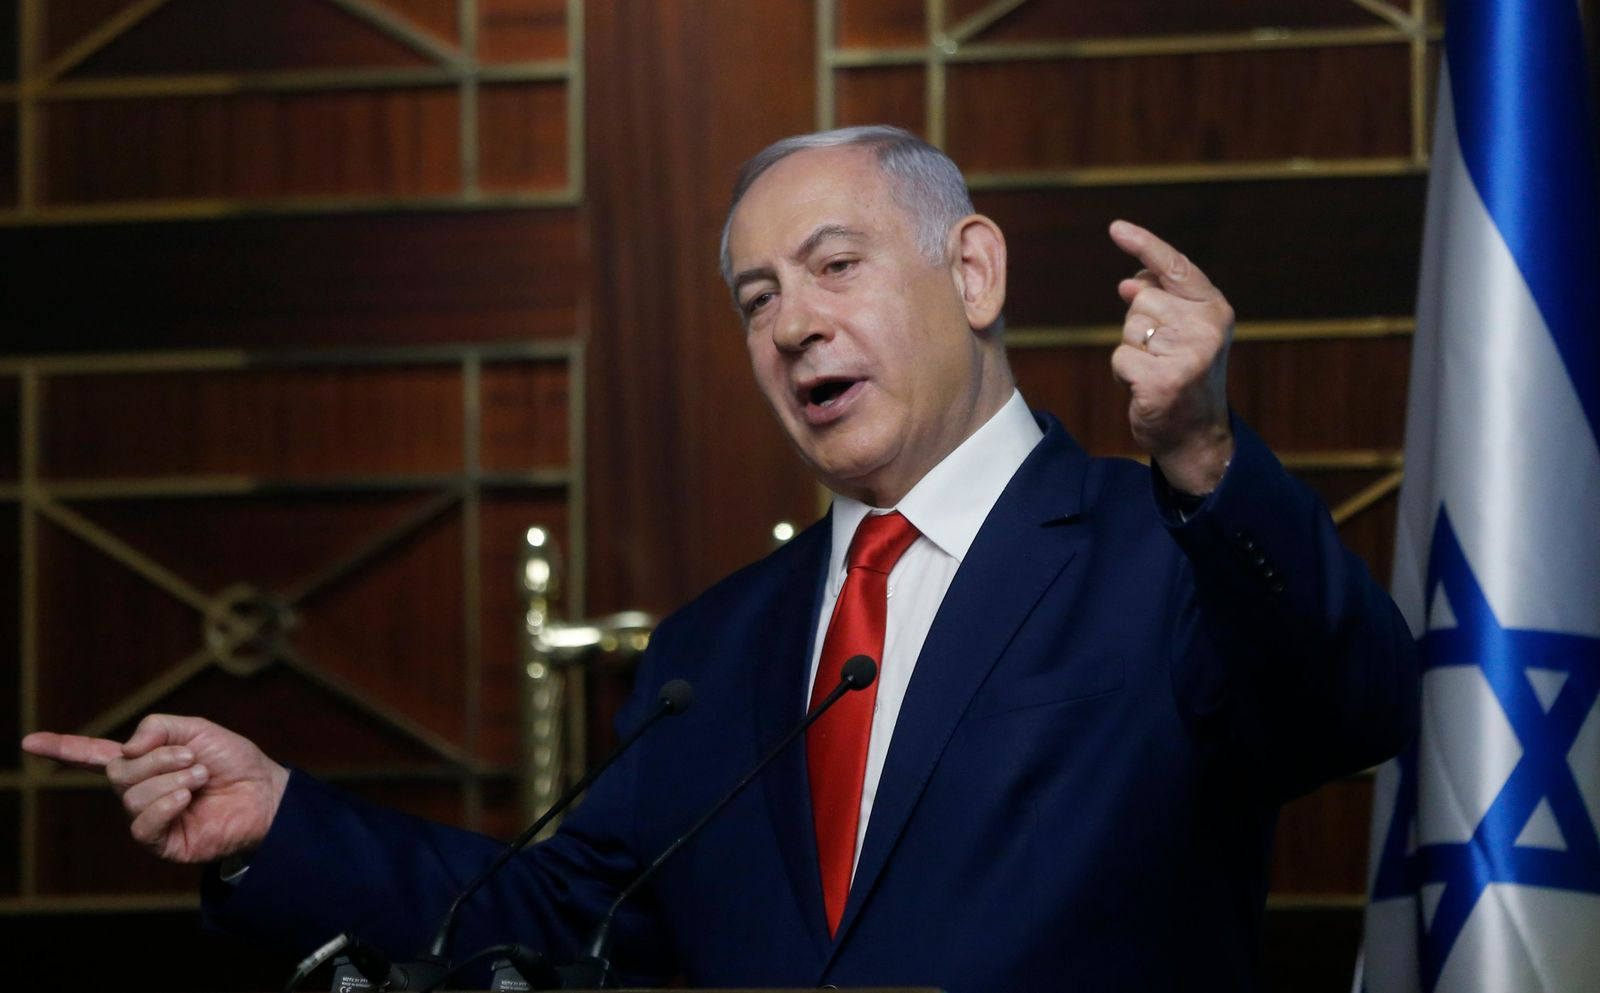 FILE - In this Tuesday, Aug. 20, 2019 file photo, Israeli Prime Minister Benjamin Netanyahu delivers a speech in Kyiv, Ukraine. (AP Photo/Efrem Lukatsky, File)